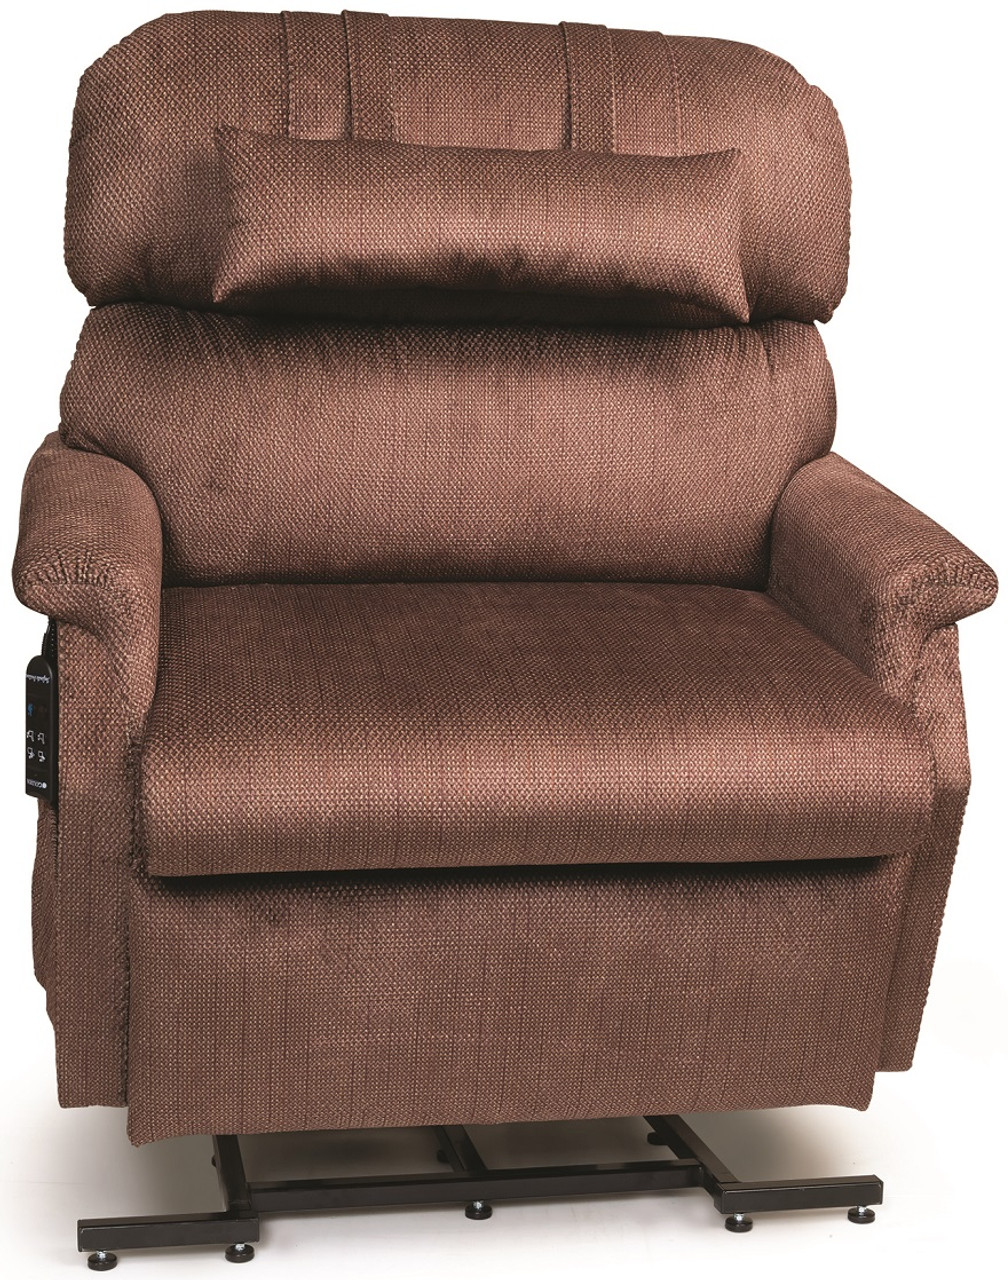 Miraculous Golden Comforter Pr 502 Extra Wide Lift Chair Pdpeps Interior Chair Design Pdpepsorg